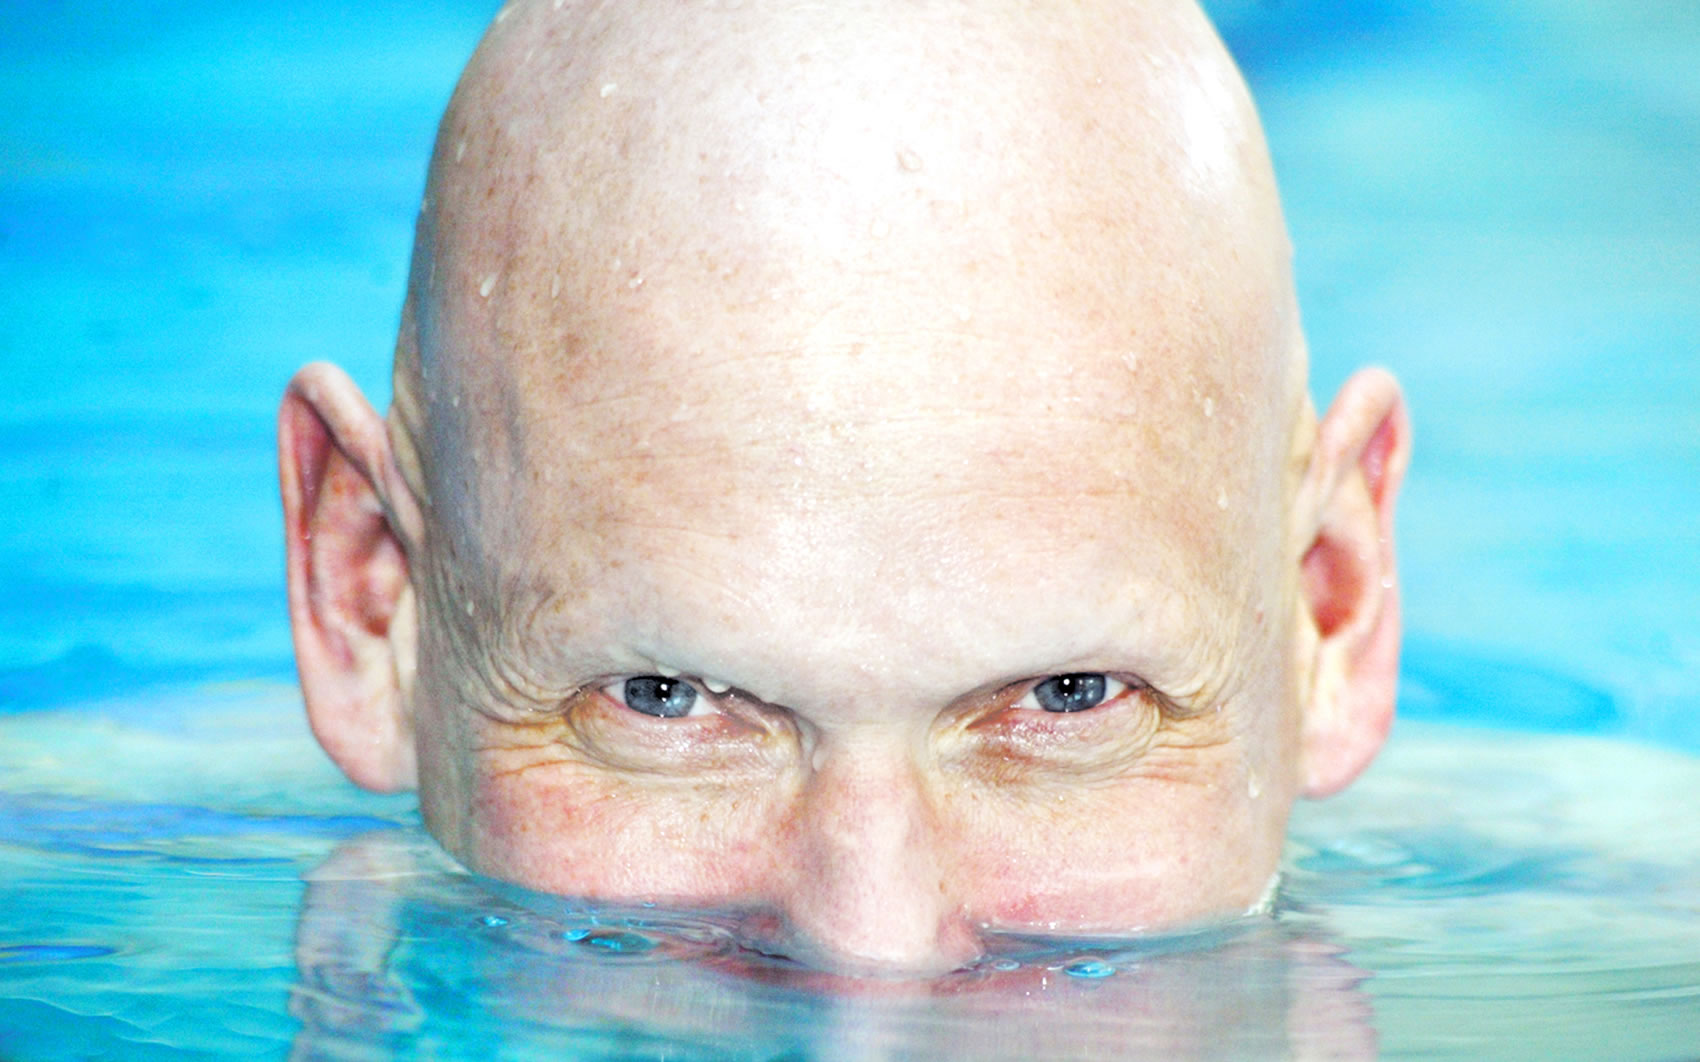 Oylimpic swimmer Duncan Goodhew